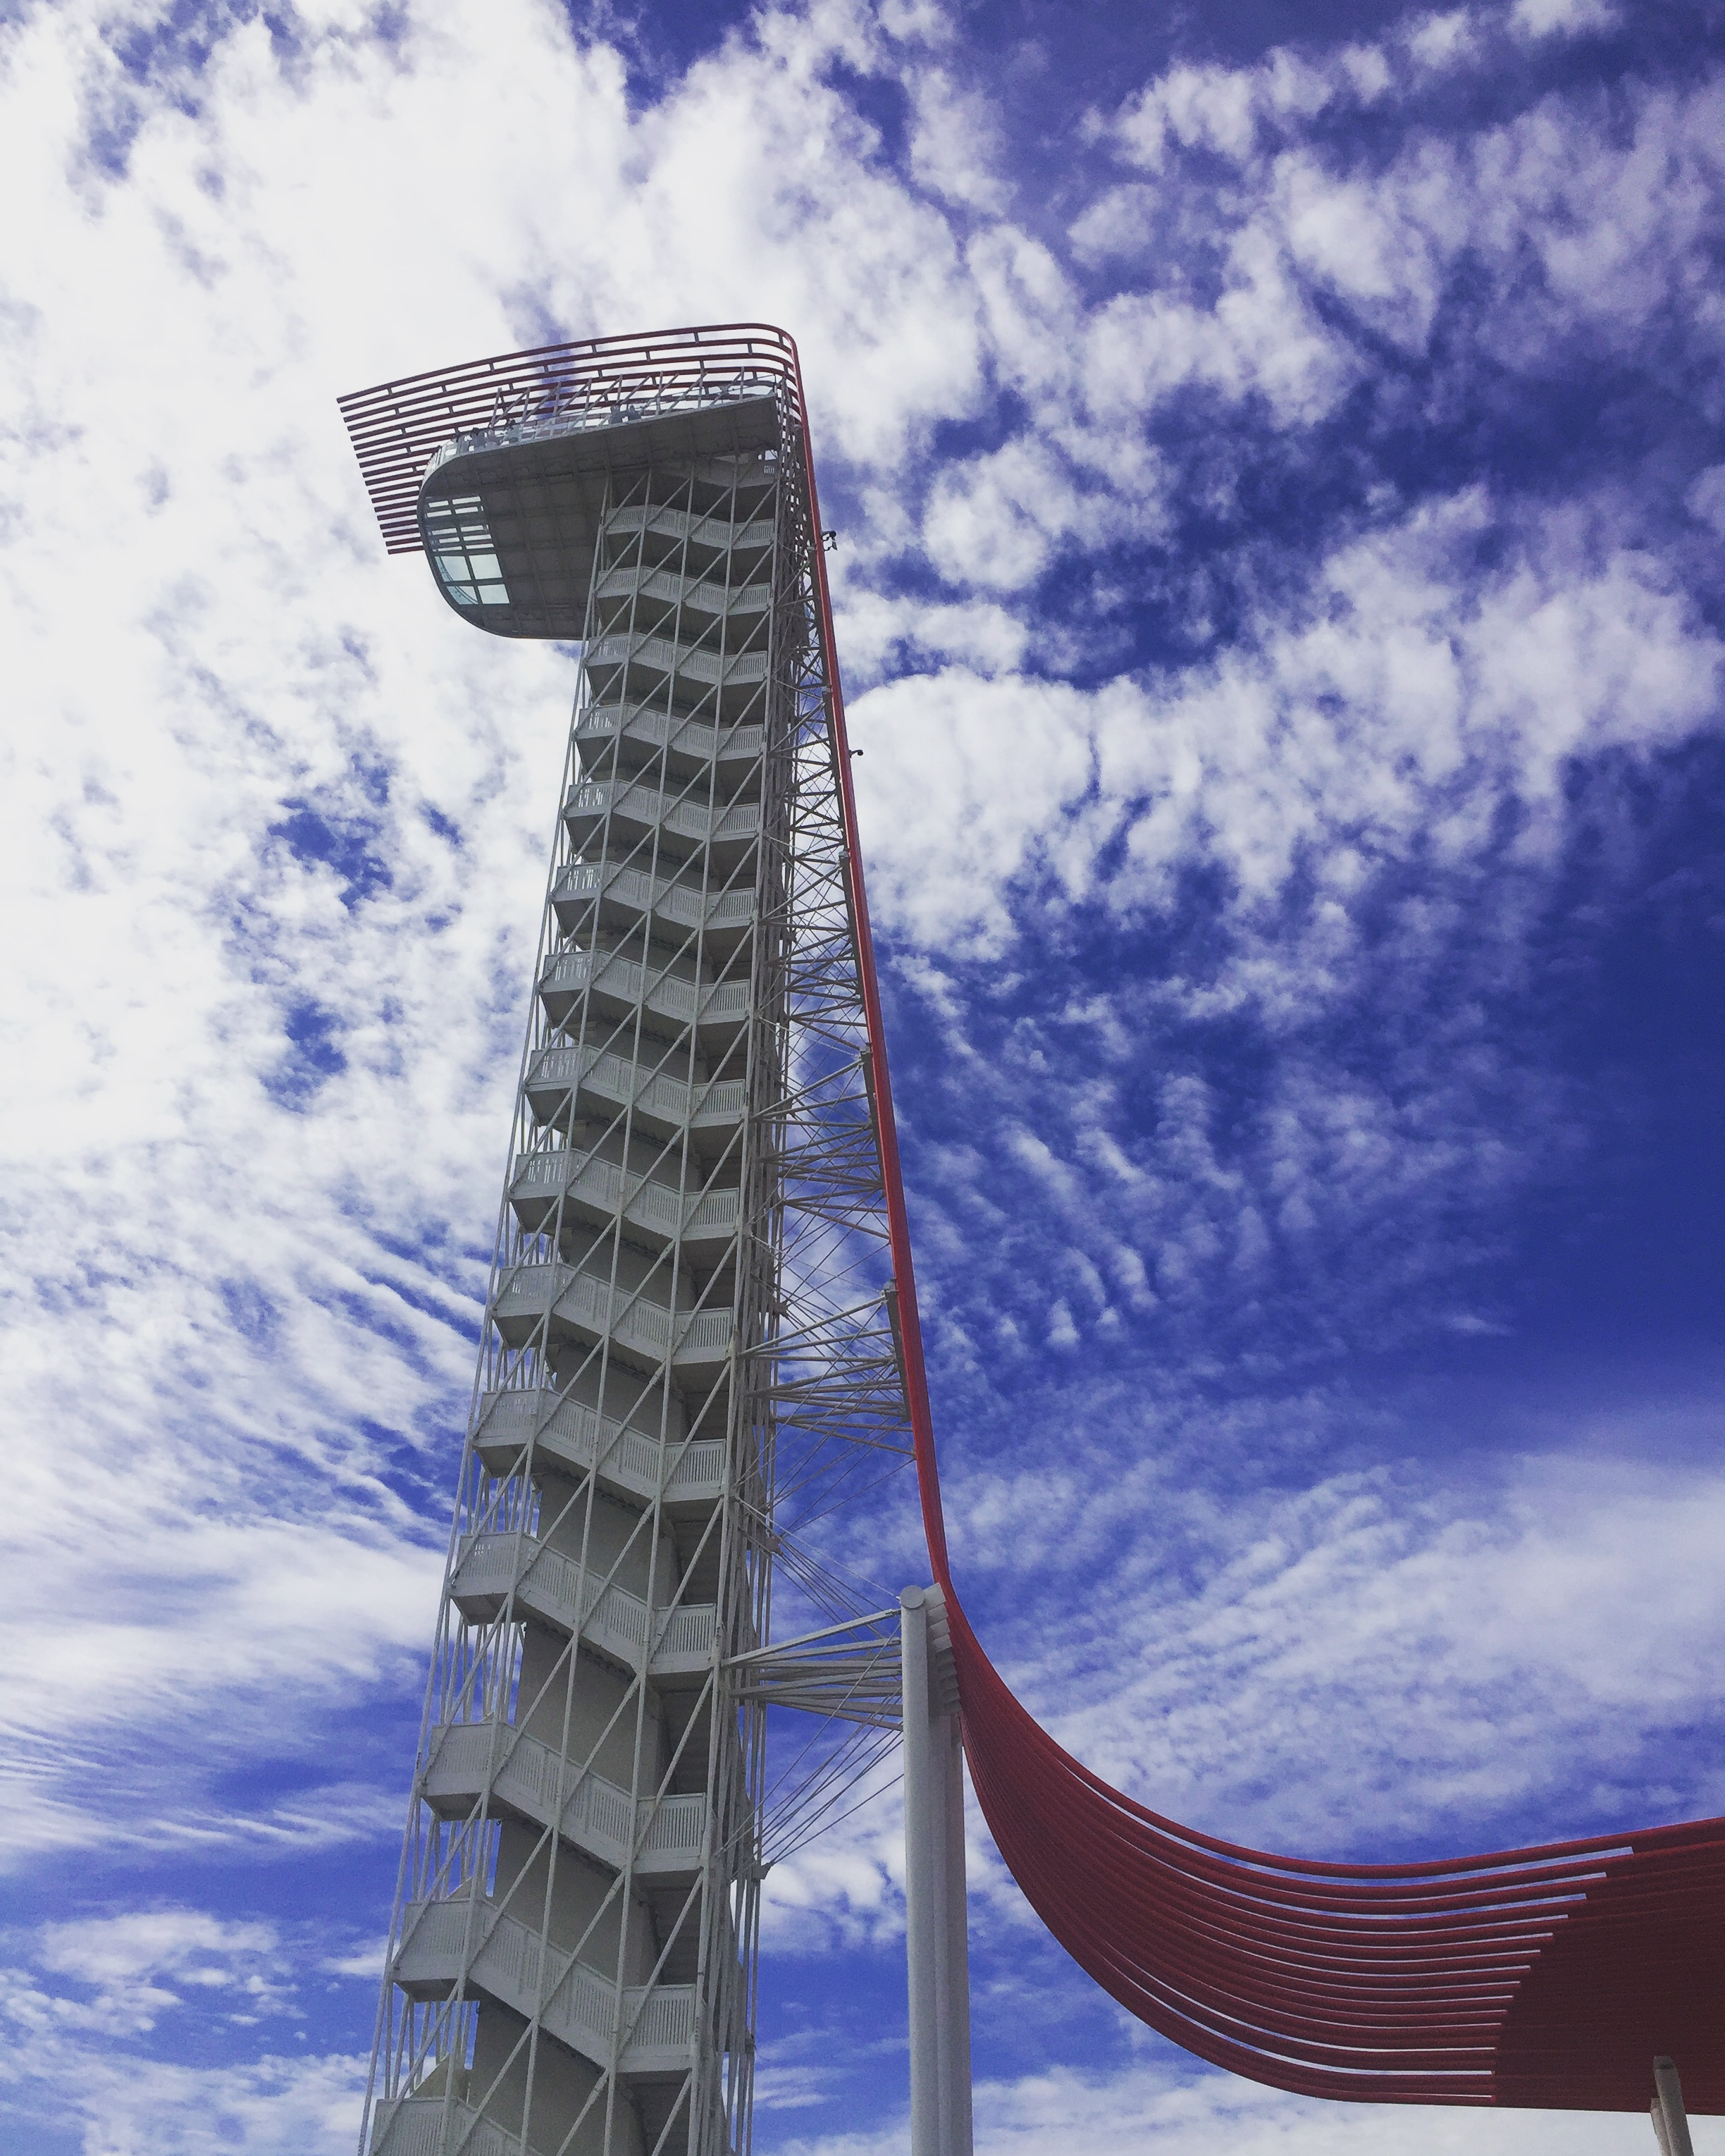 Cool tower at The CIrcuit of the Americas where the Formula 1 in Austin happens.